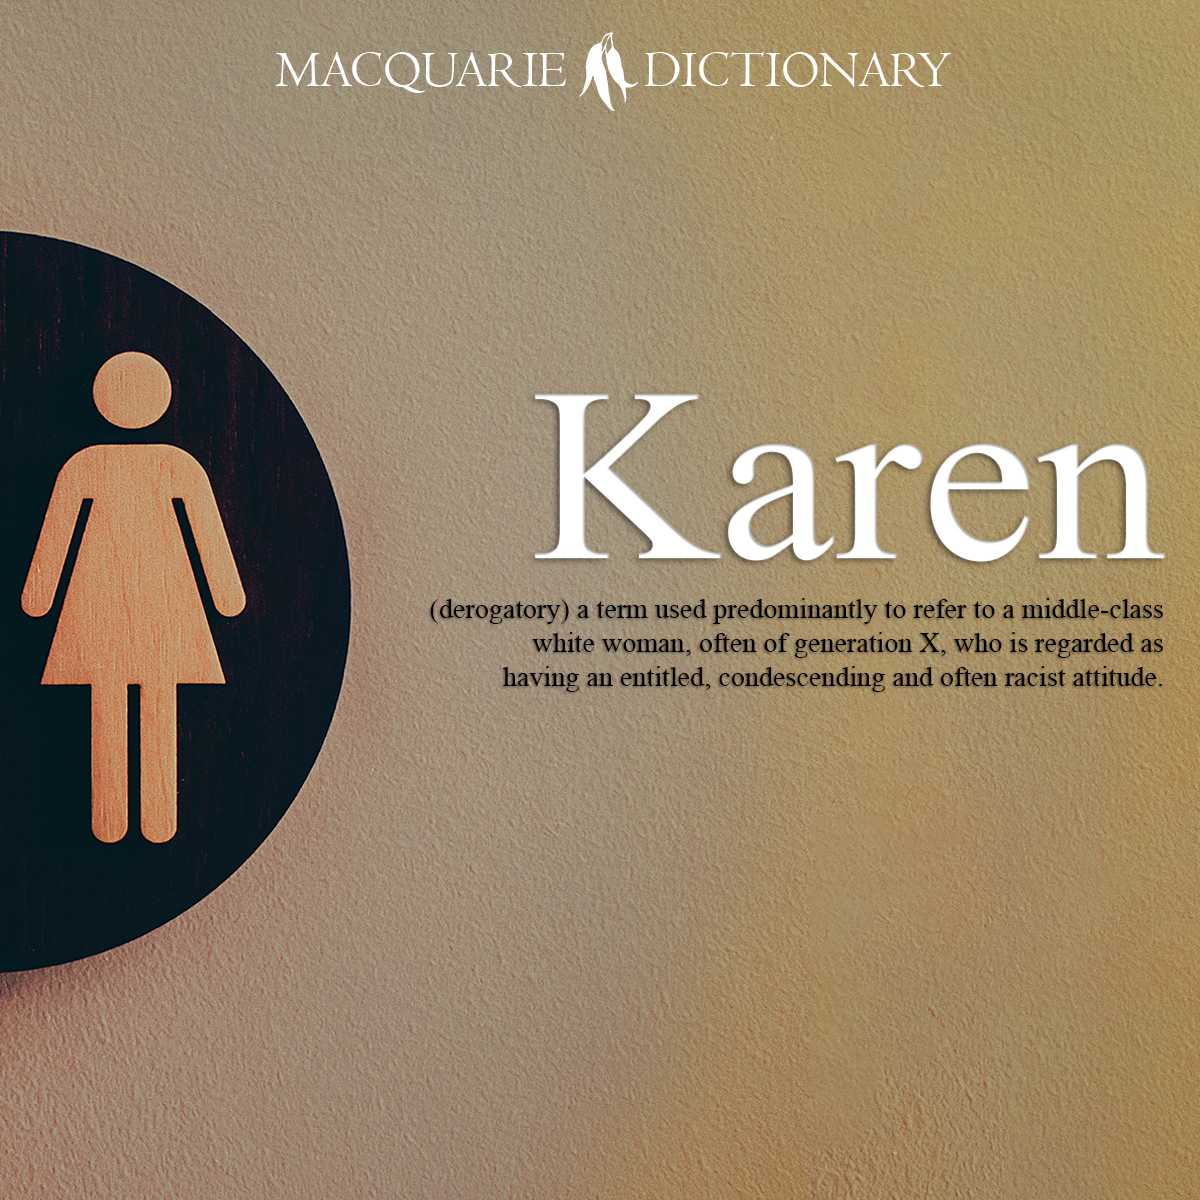 Karen - a term used predominantly to refer to a middle-class white woman, often of generation X, who is regarded as having an entitled, condescending and often racist attitude.